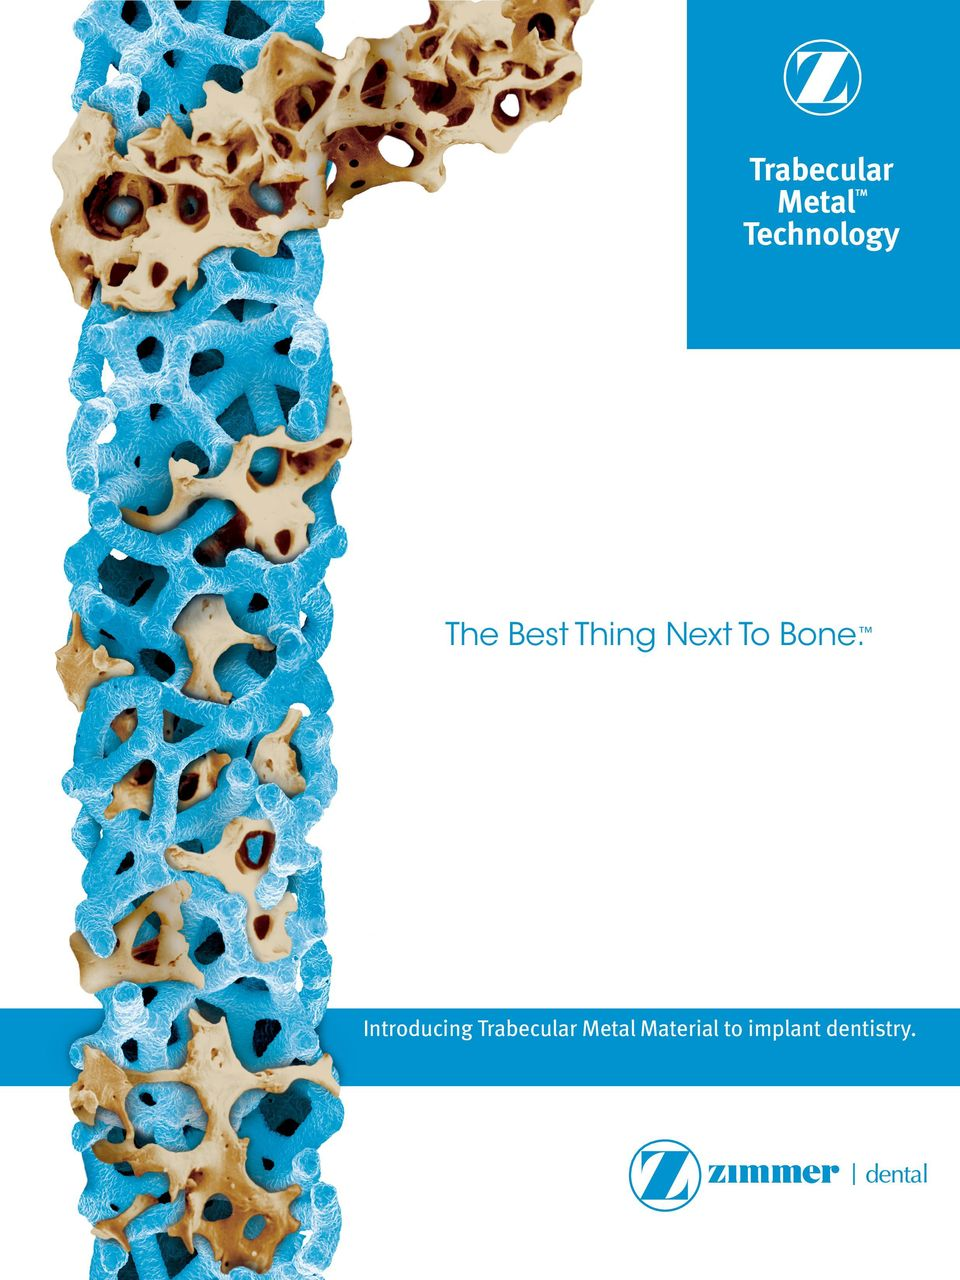 Bone. Introducing Trabecular